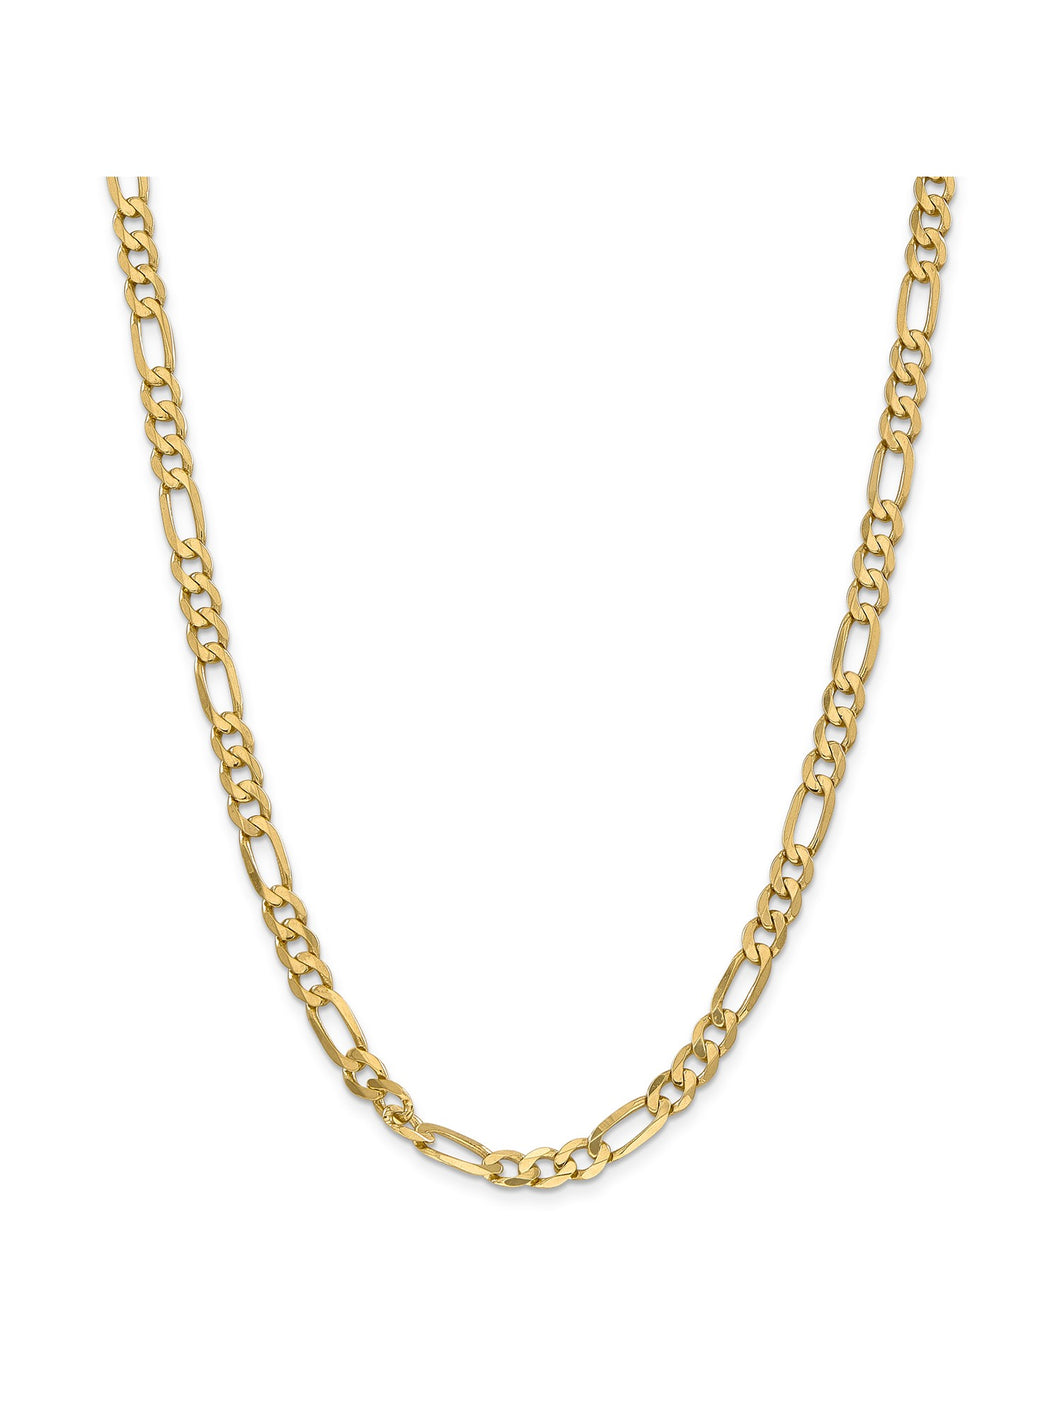 14k Yellow Gold 6.25mm Flat Figaro Chain Necklace